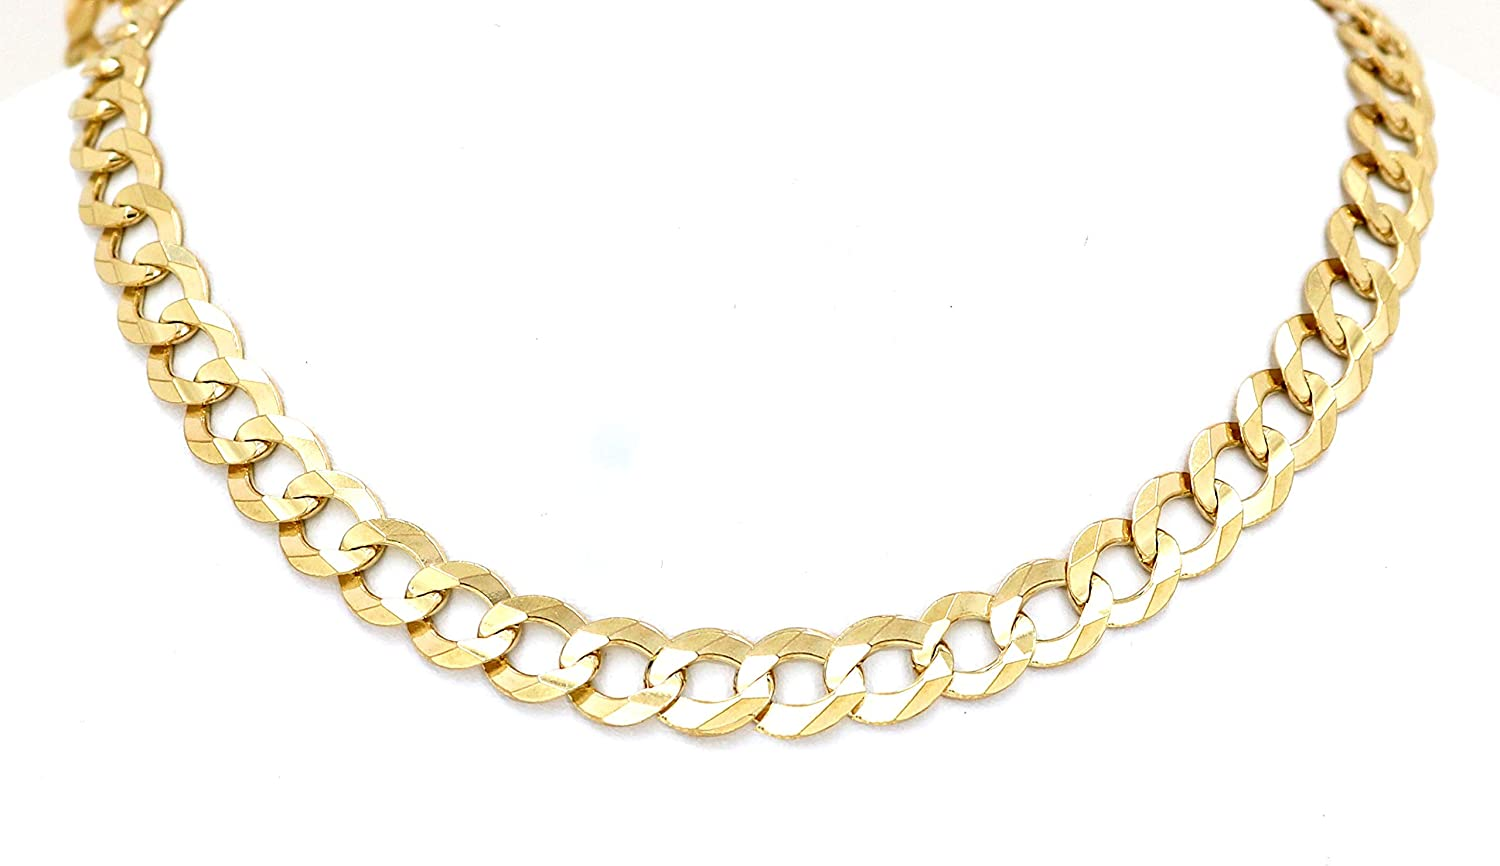 Real 10K Yellow Gold Hollow C-Link Chain/Necklace 3.5mm, 16